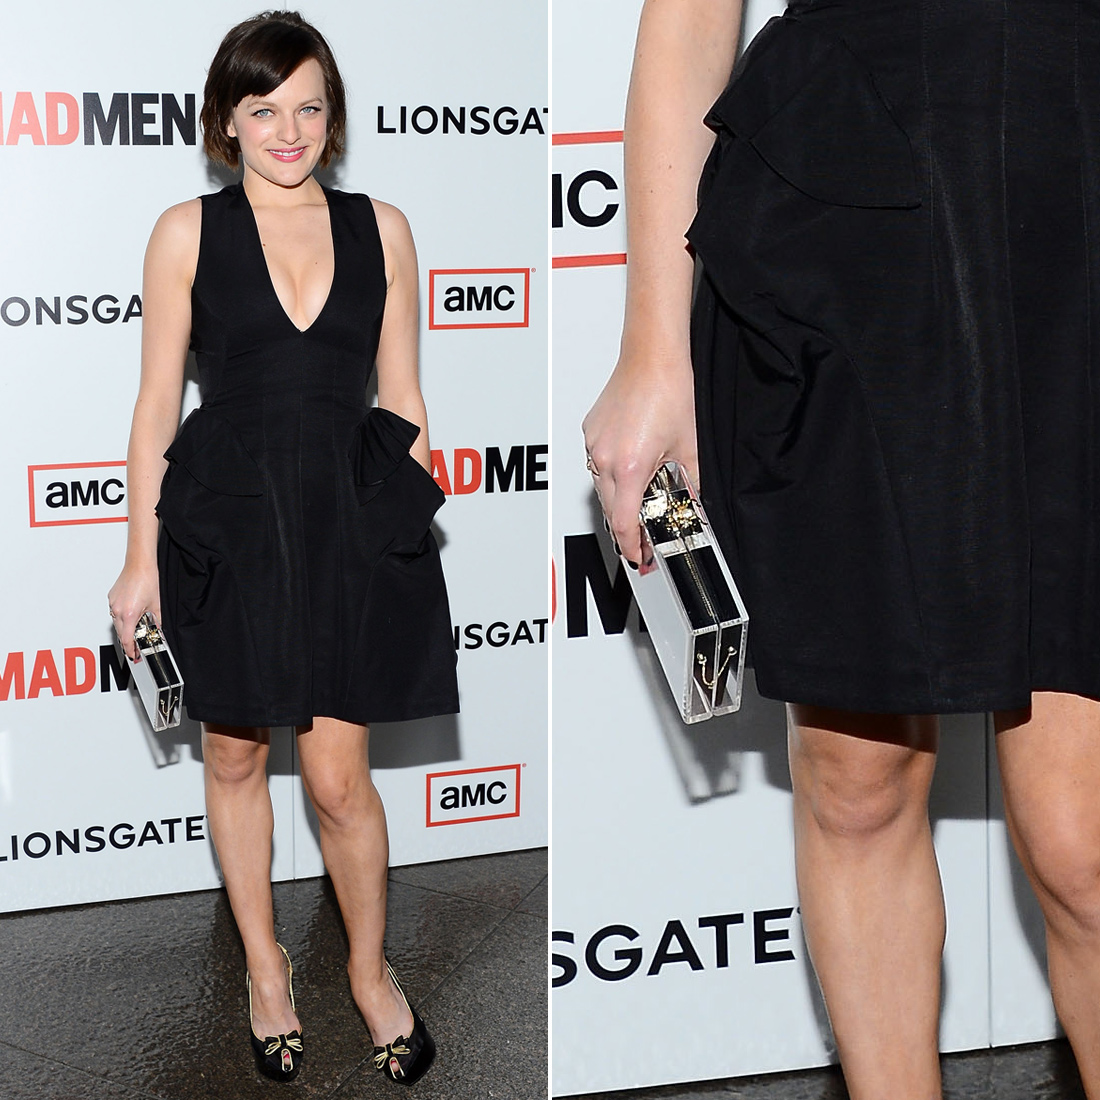 At the Mad Men season six premiere in LA, Elisabeth Moss donned a plunging McQ Alexander McQueen LBD with a Lucite box clutch from Charlotte Olympia.